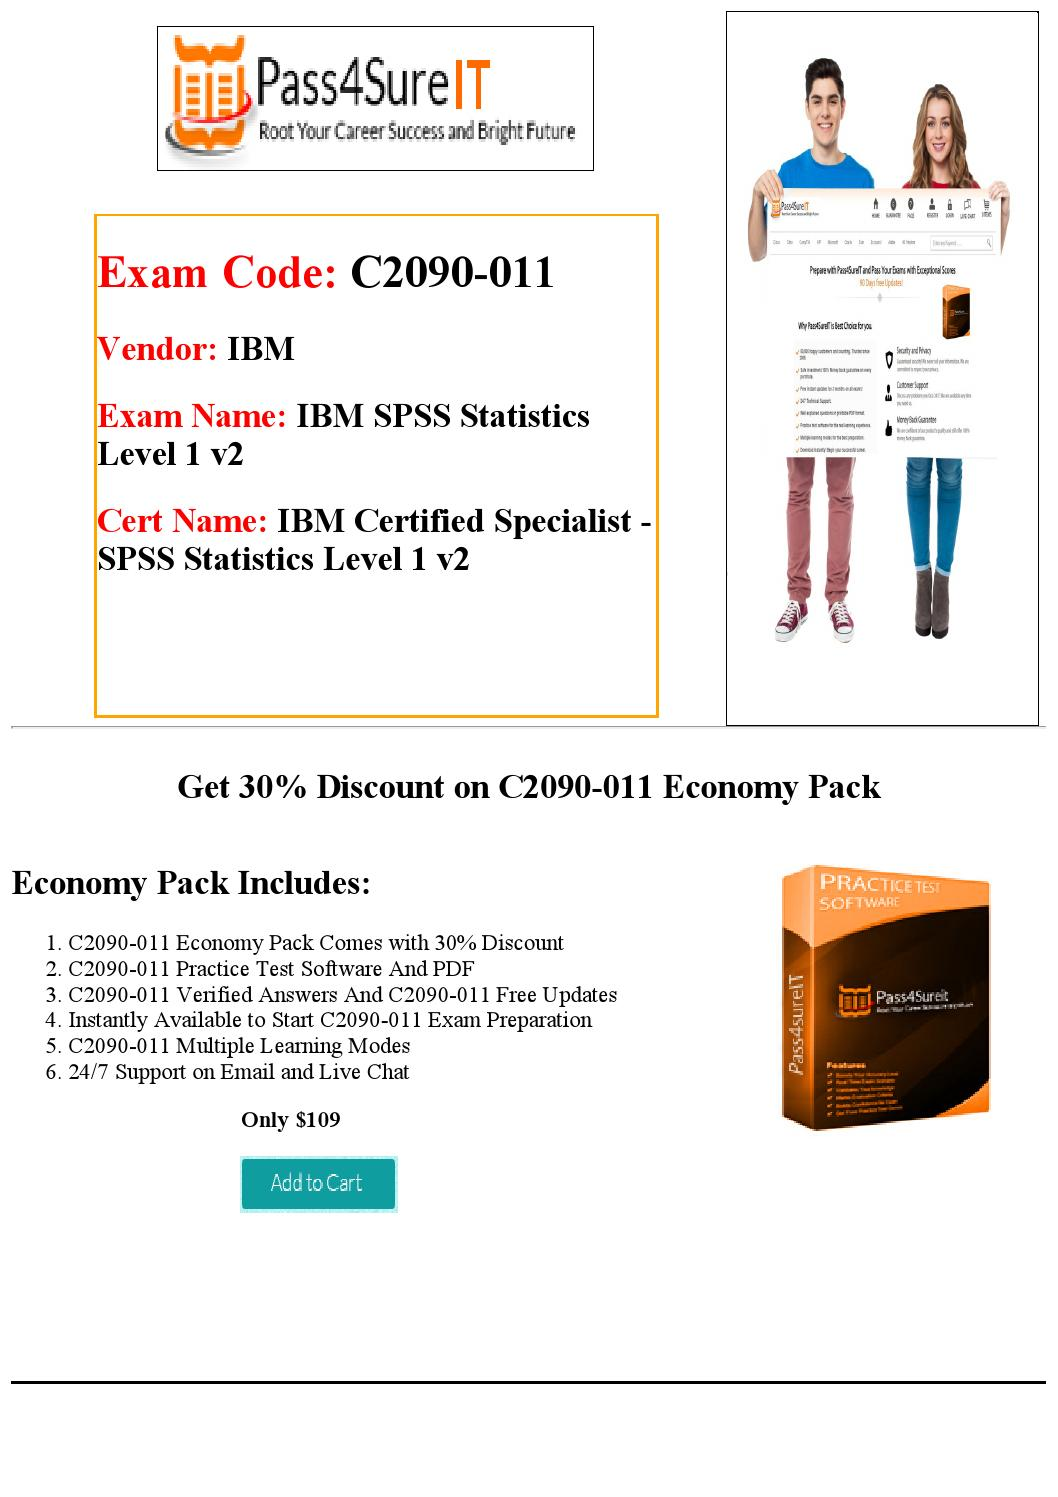 Pass4sure c2090-011 exam question and answers by Courtney